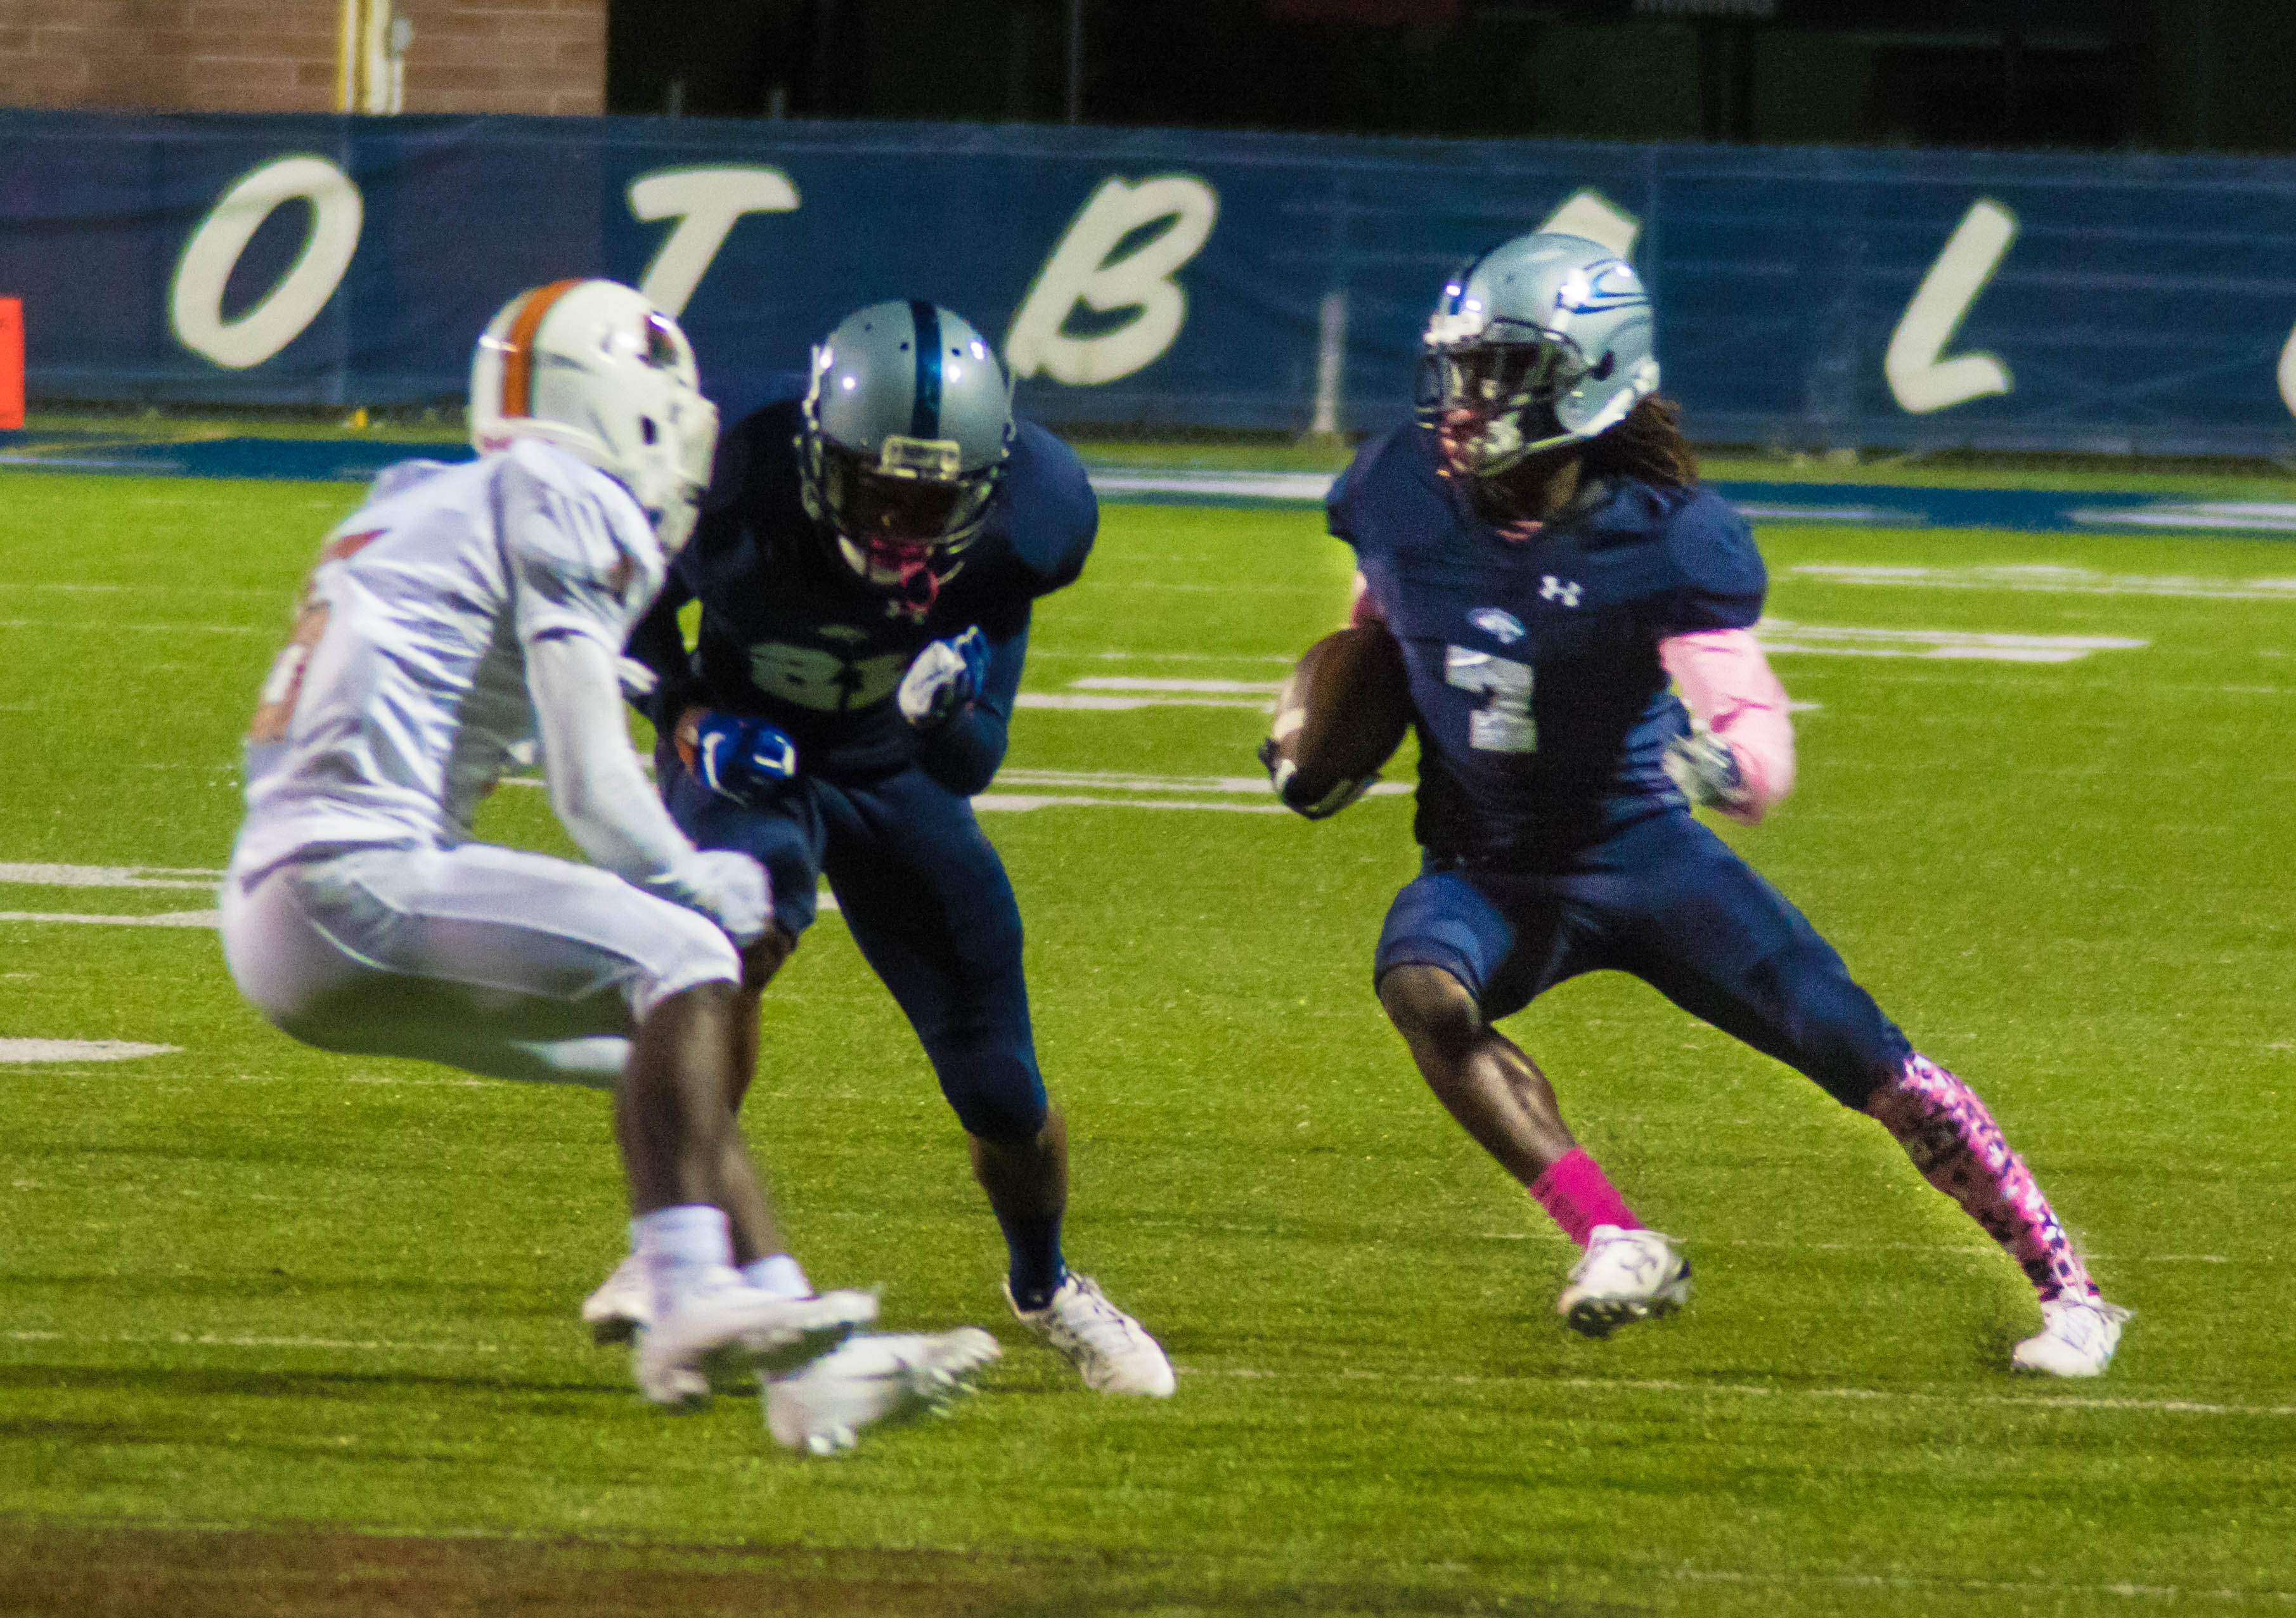 Clay-Chalkville handles business against Huffman, wins 49-14 over the Vikings